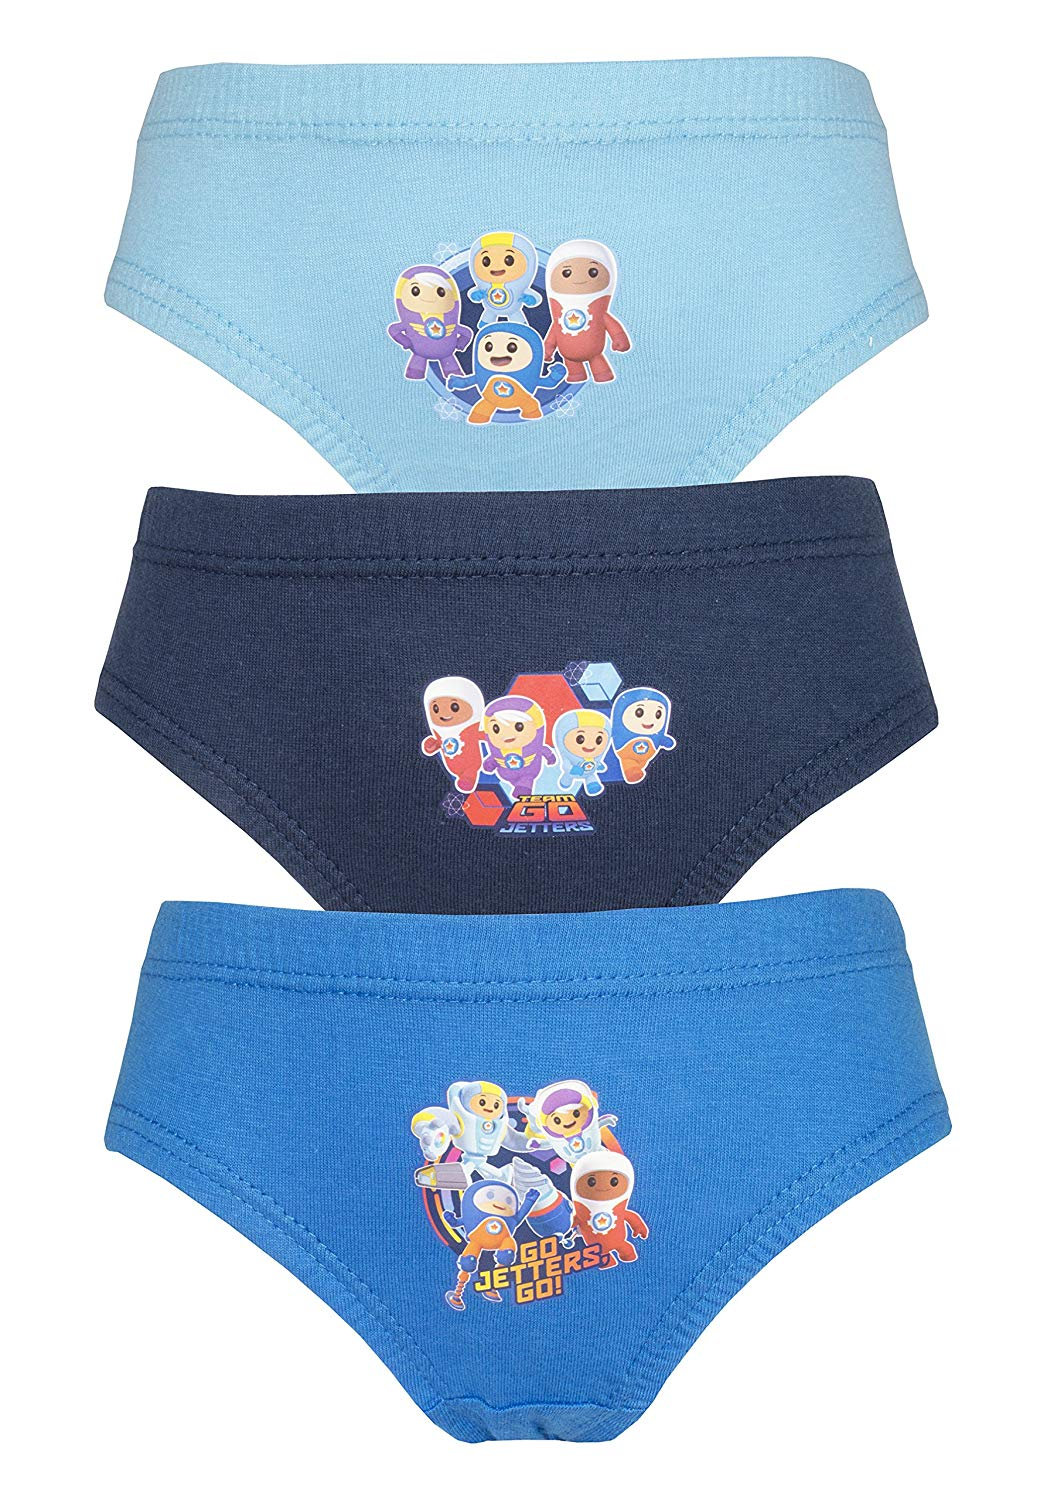 Cartoon Character Products CBeebies 3 Pack Boys Go Jetters Pants/Briefs Various Designs 18 Months - 5 yer